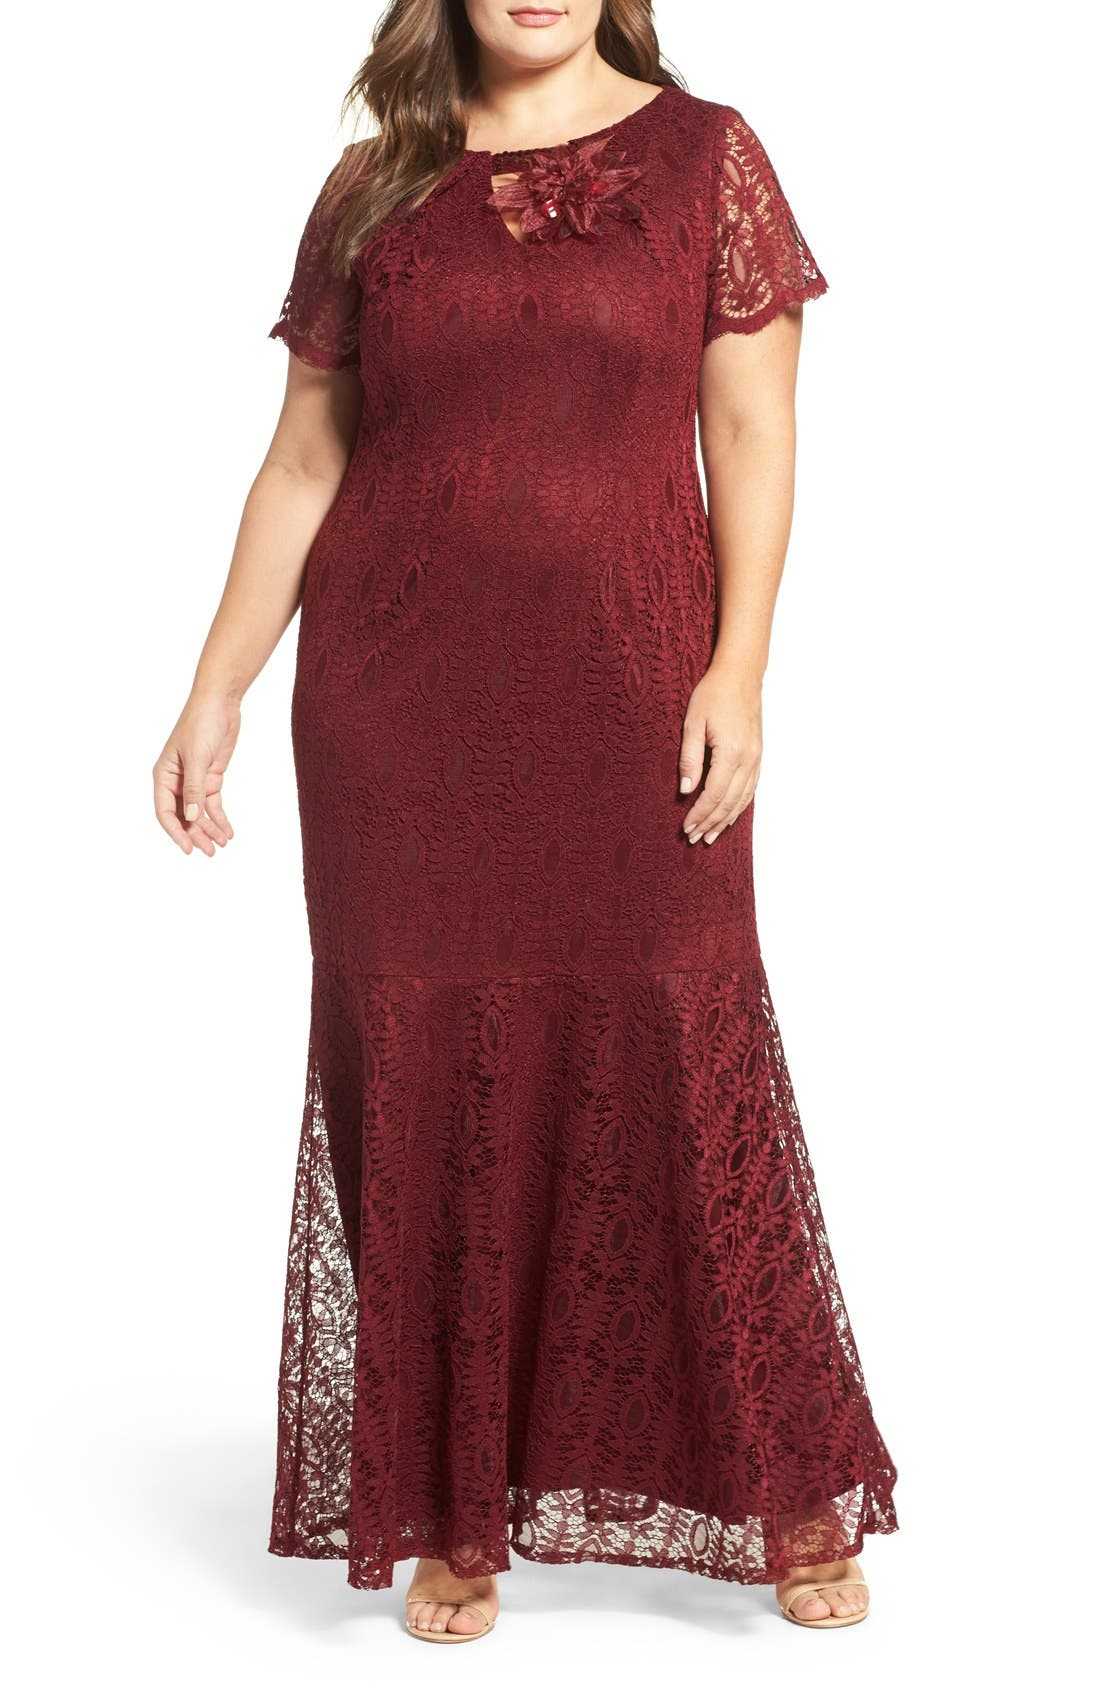 Main Image - Brianna Embellished Lace Mermaid Gown (Plus Size)